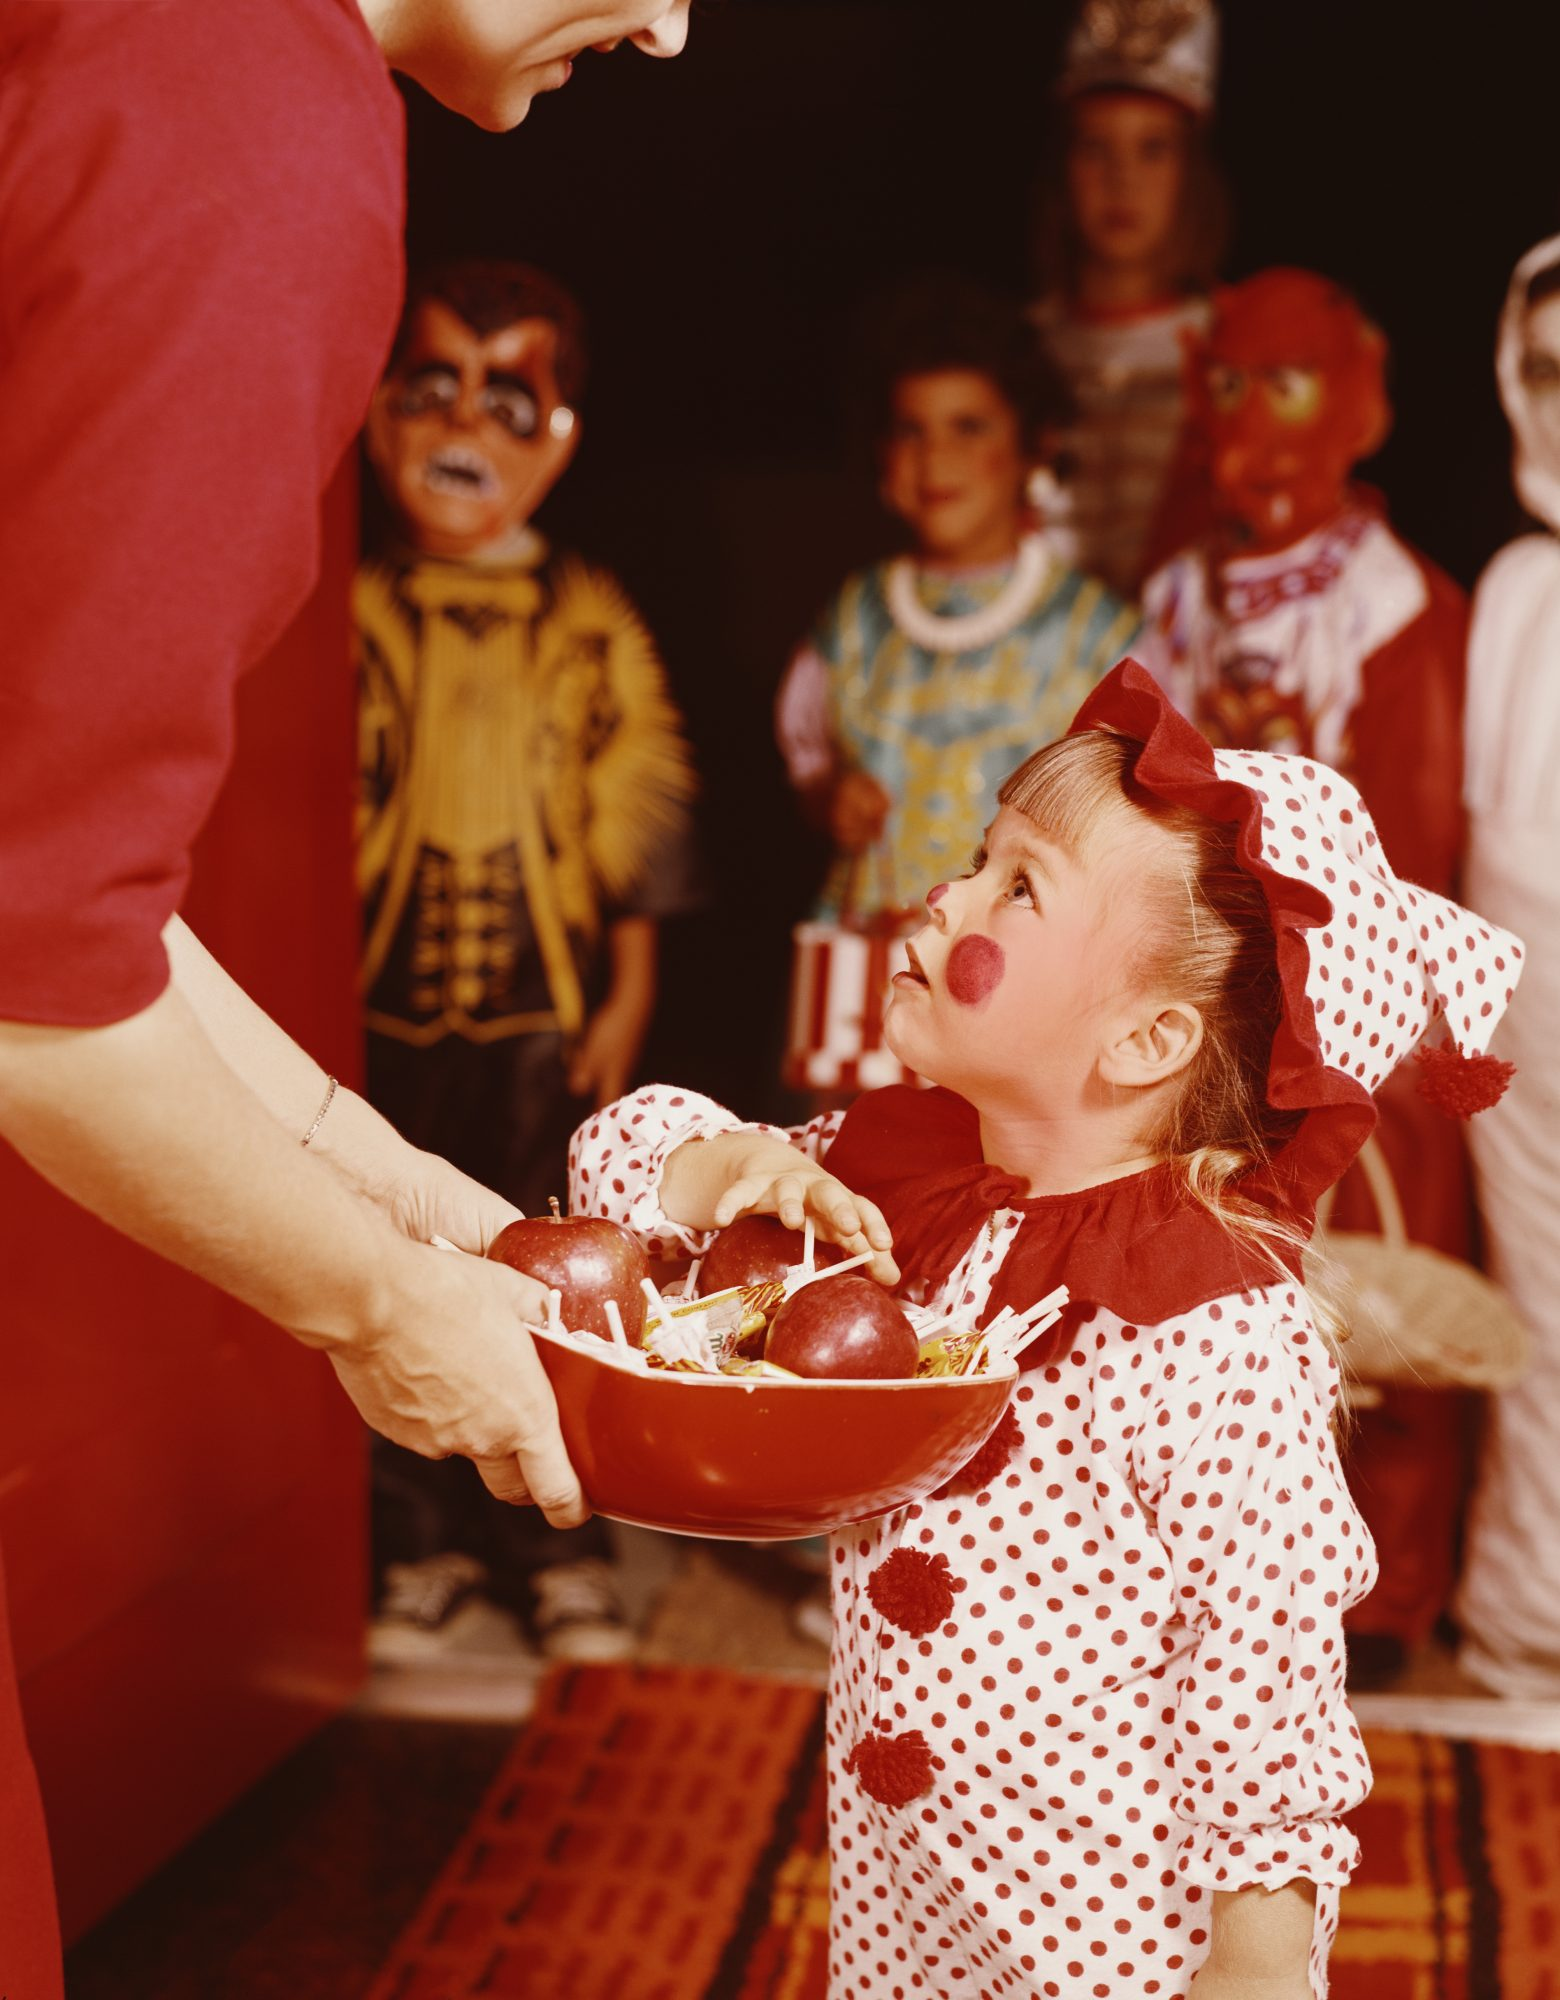 Vintage Halloween Trick or Treating